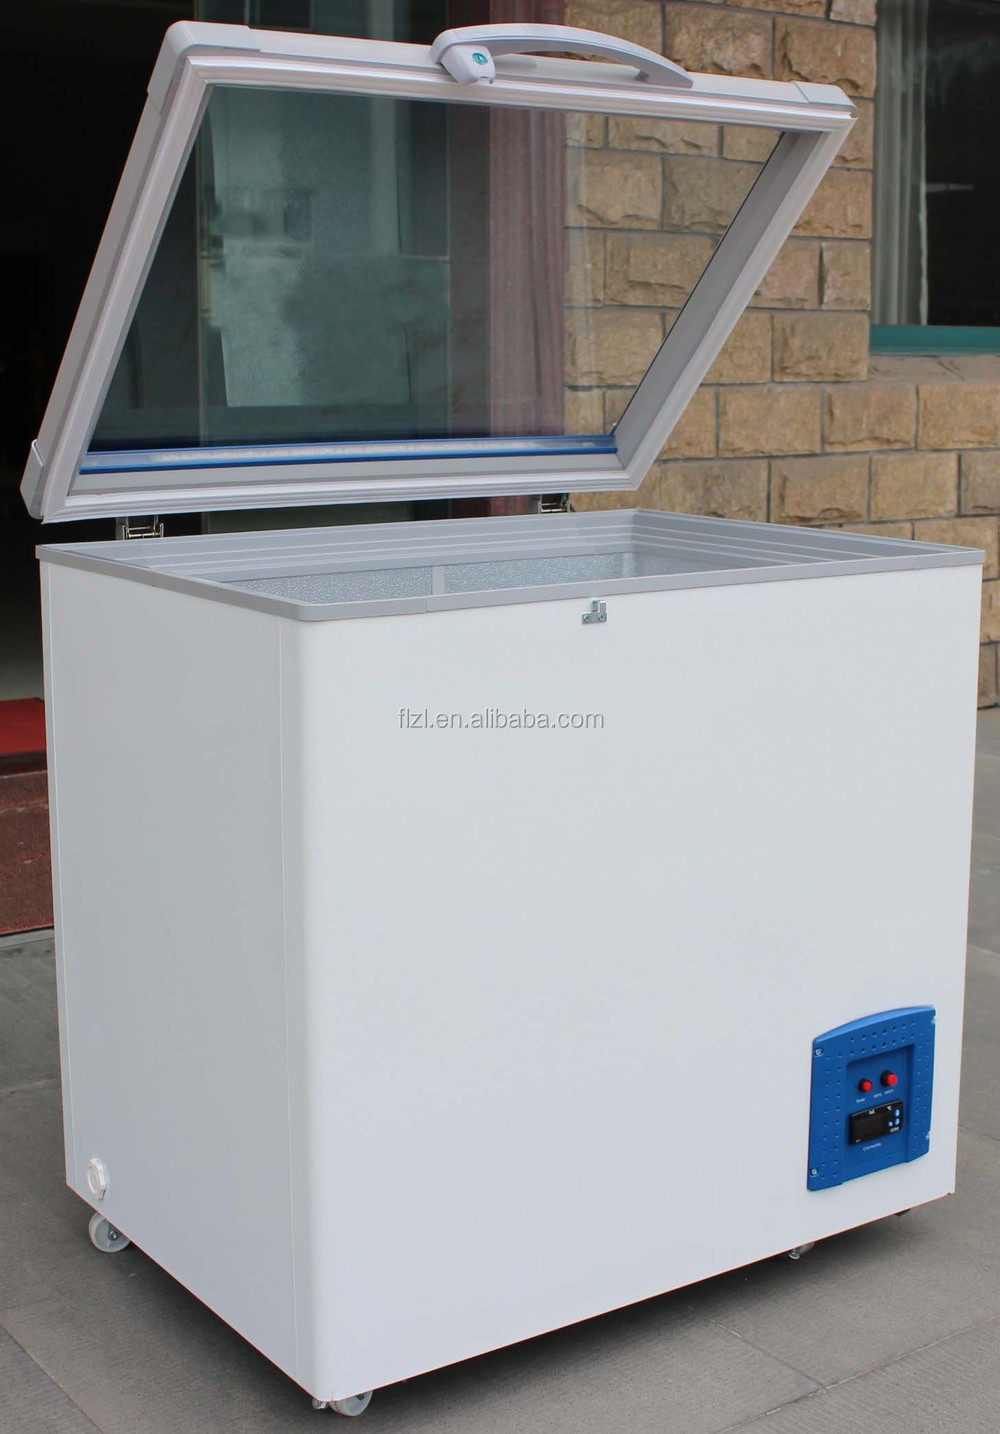 Glass Door Chest Freezer Mini Glass Door Deep Freezer